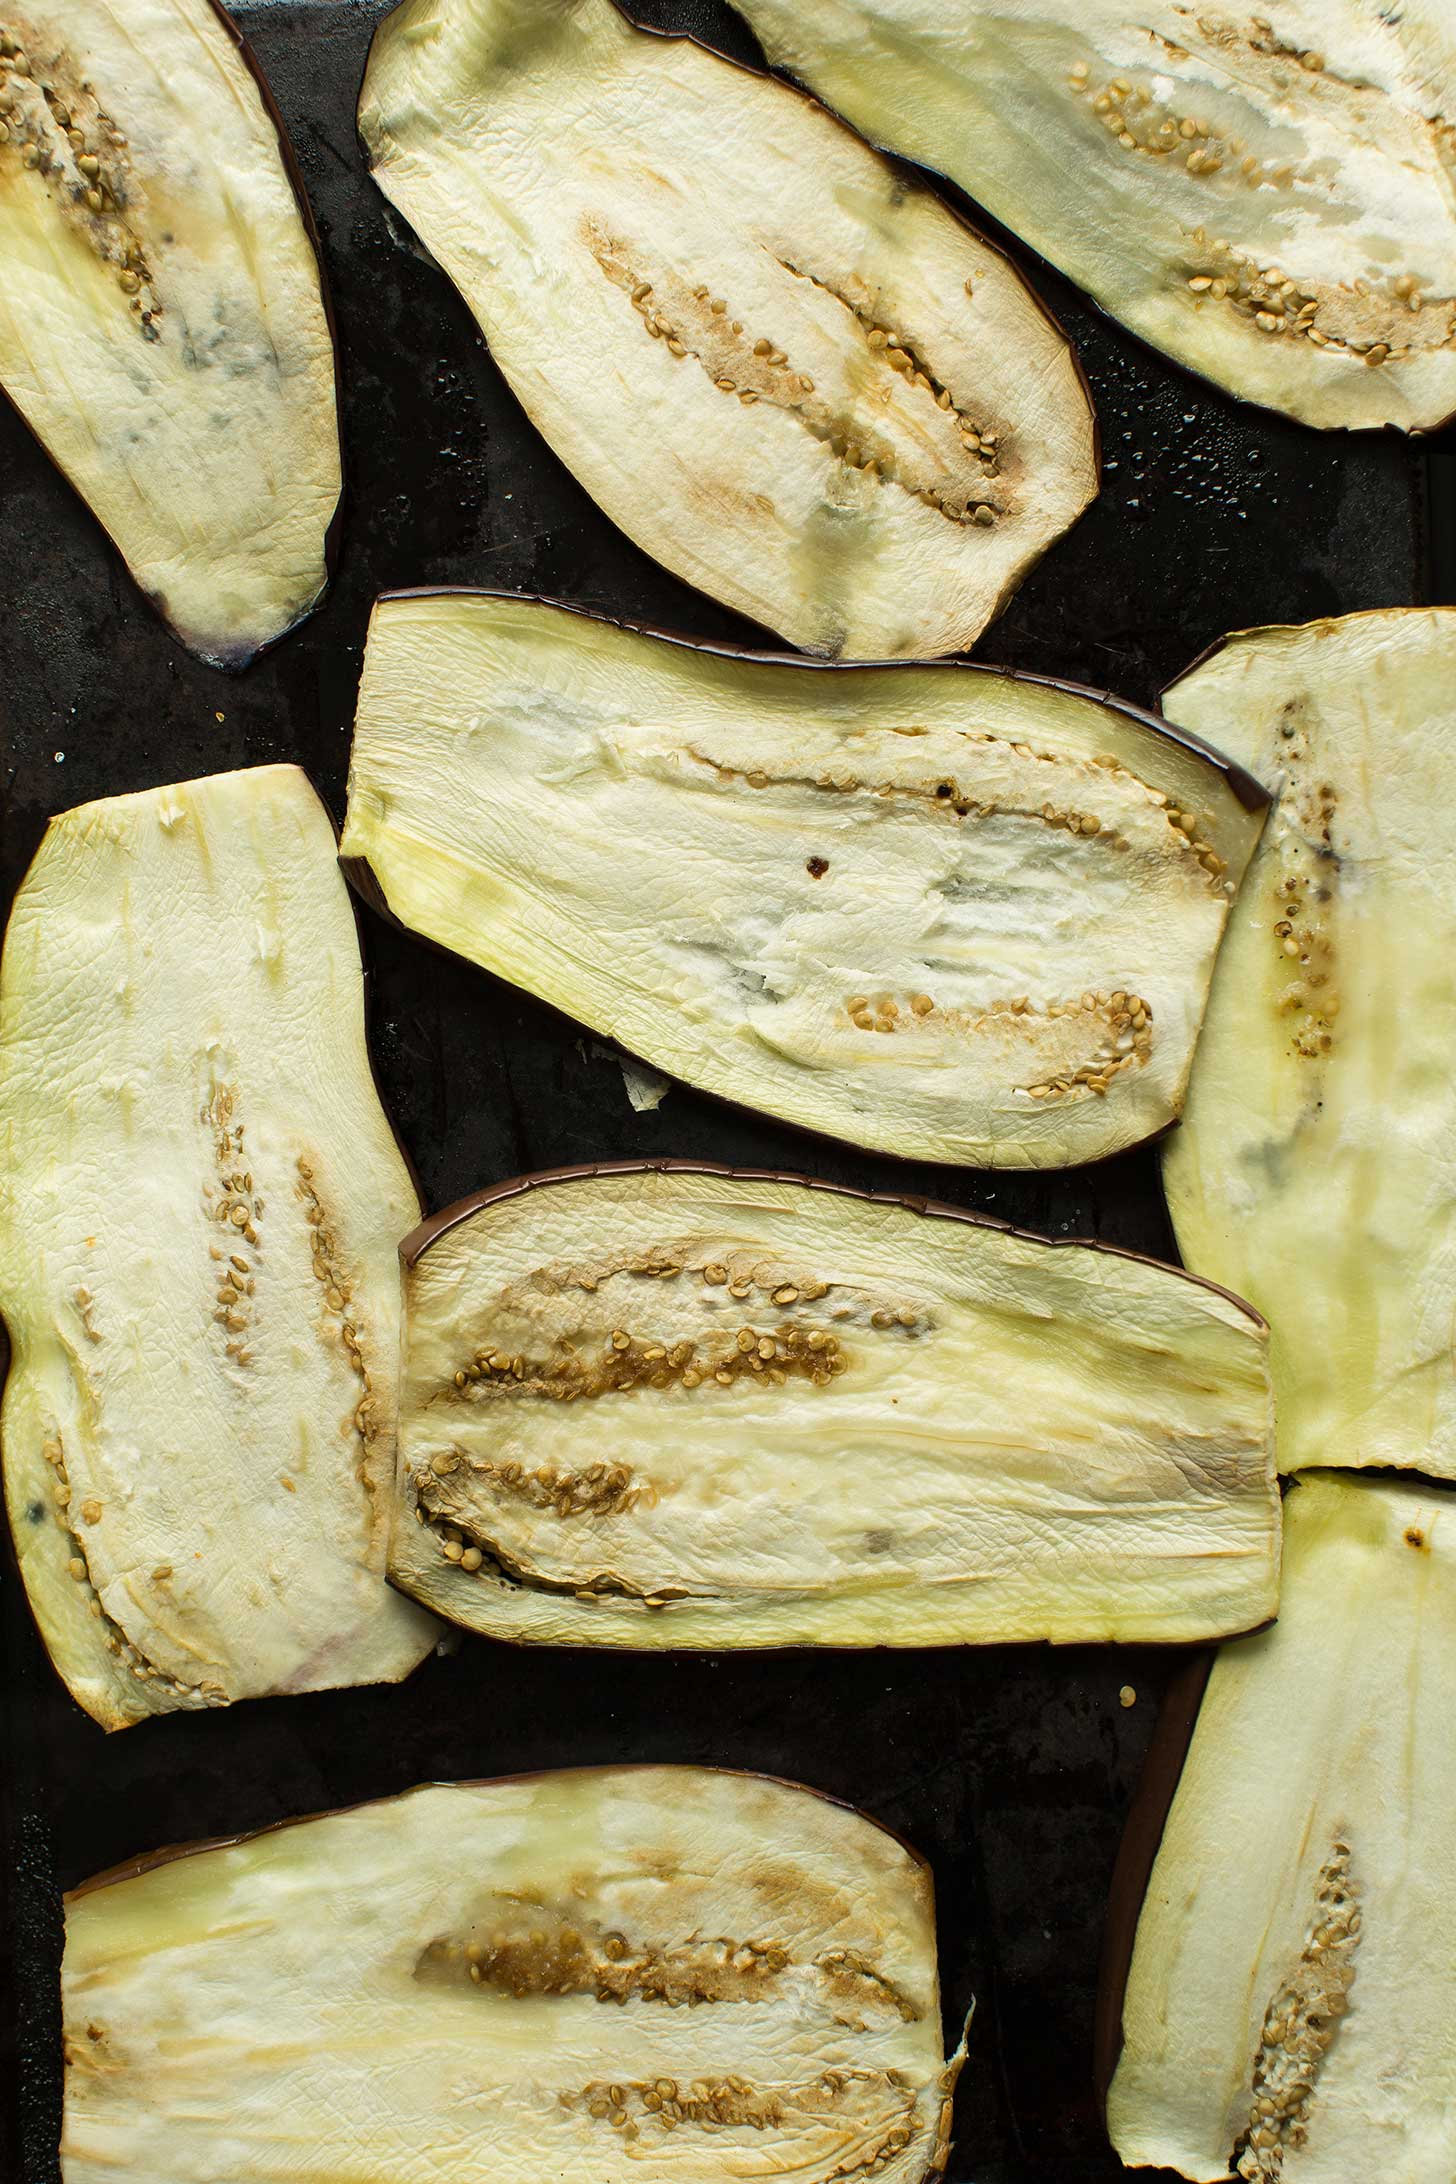 Baking sheet with thinly sliced eggplant for making easy gluten-free vegan lasagna